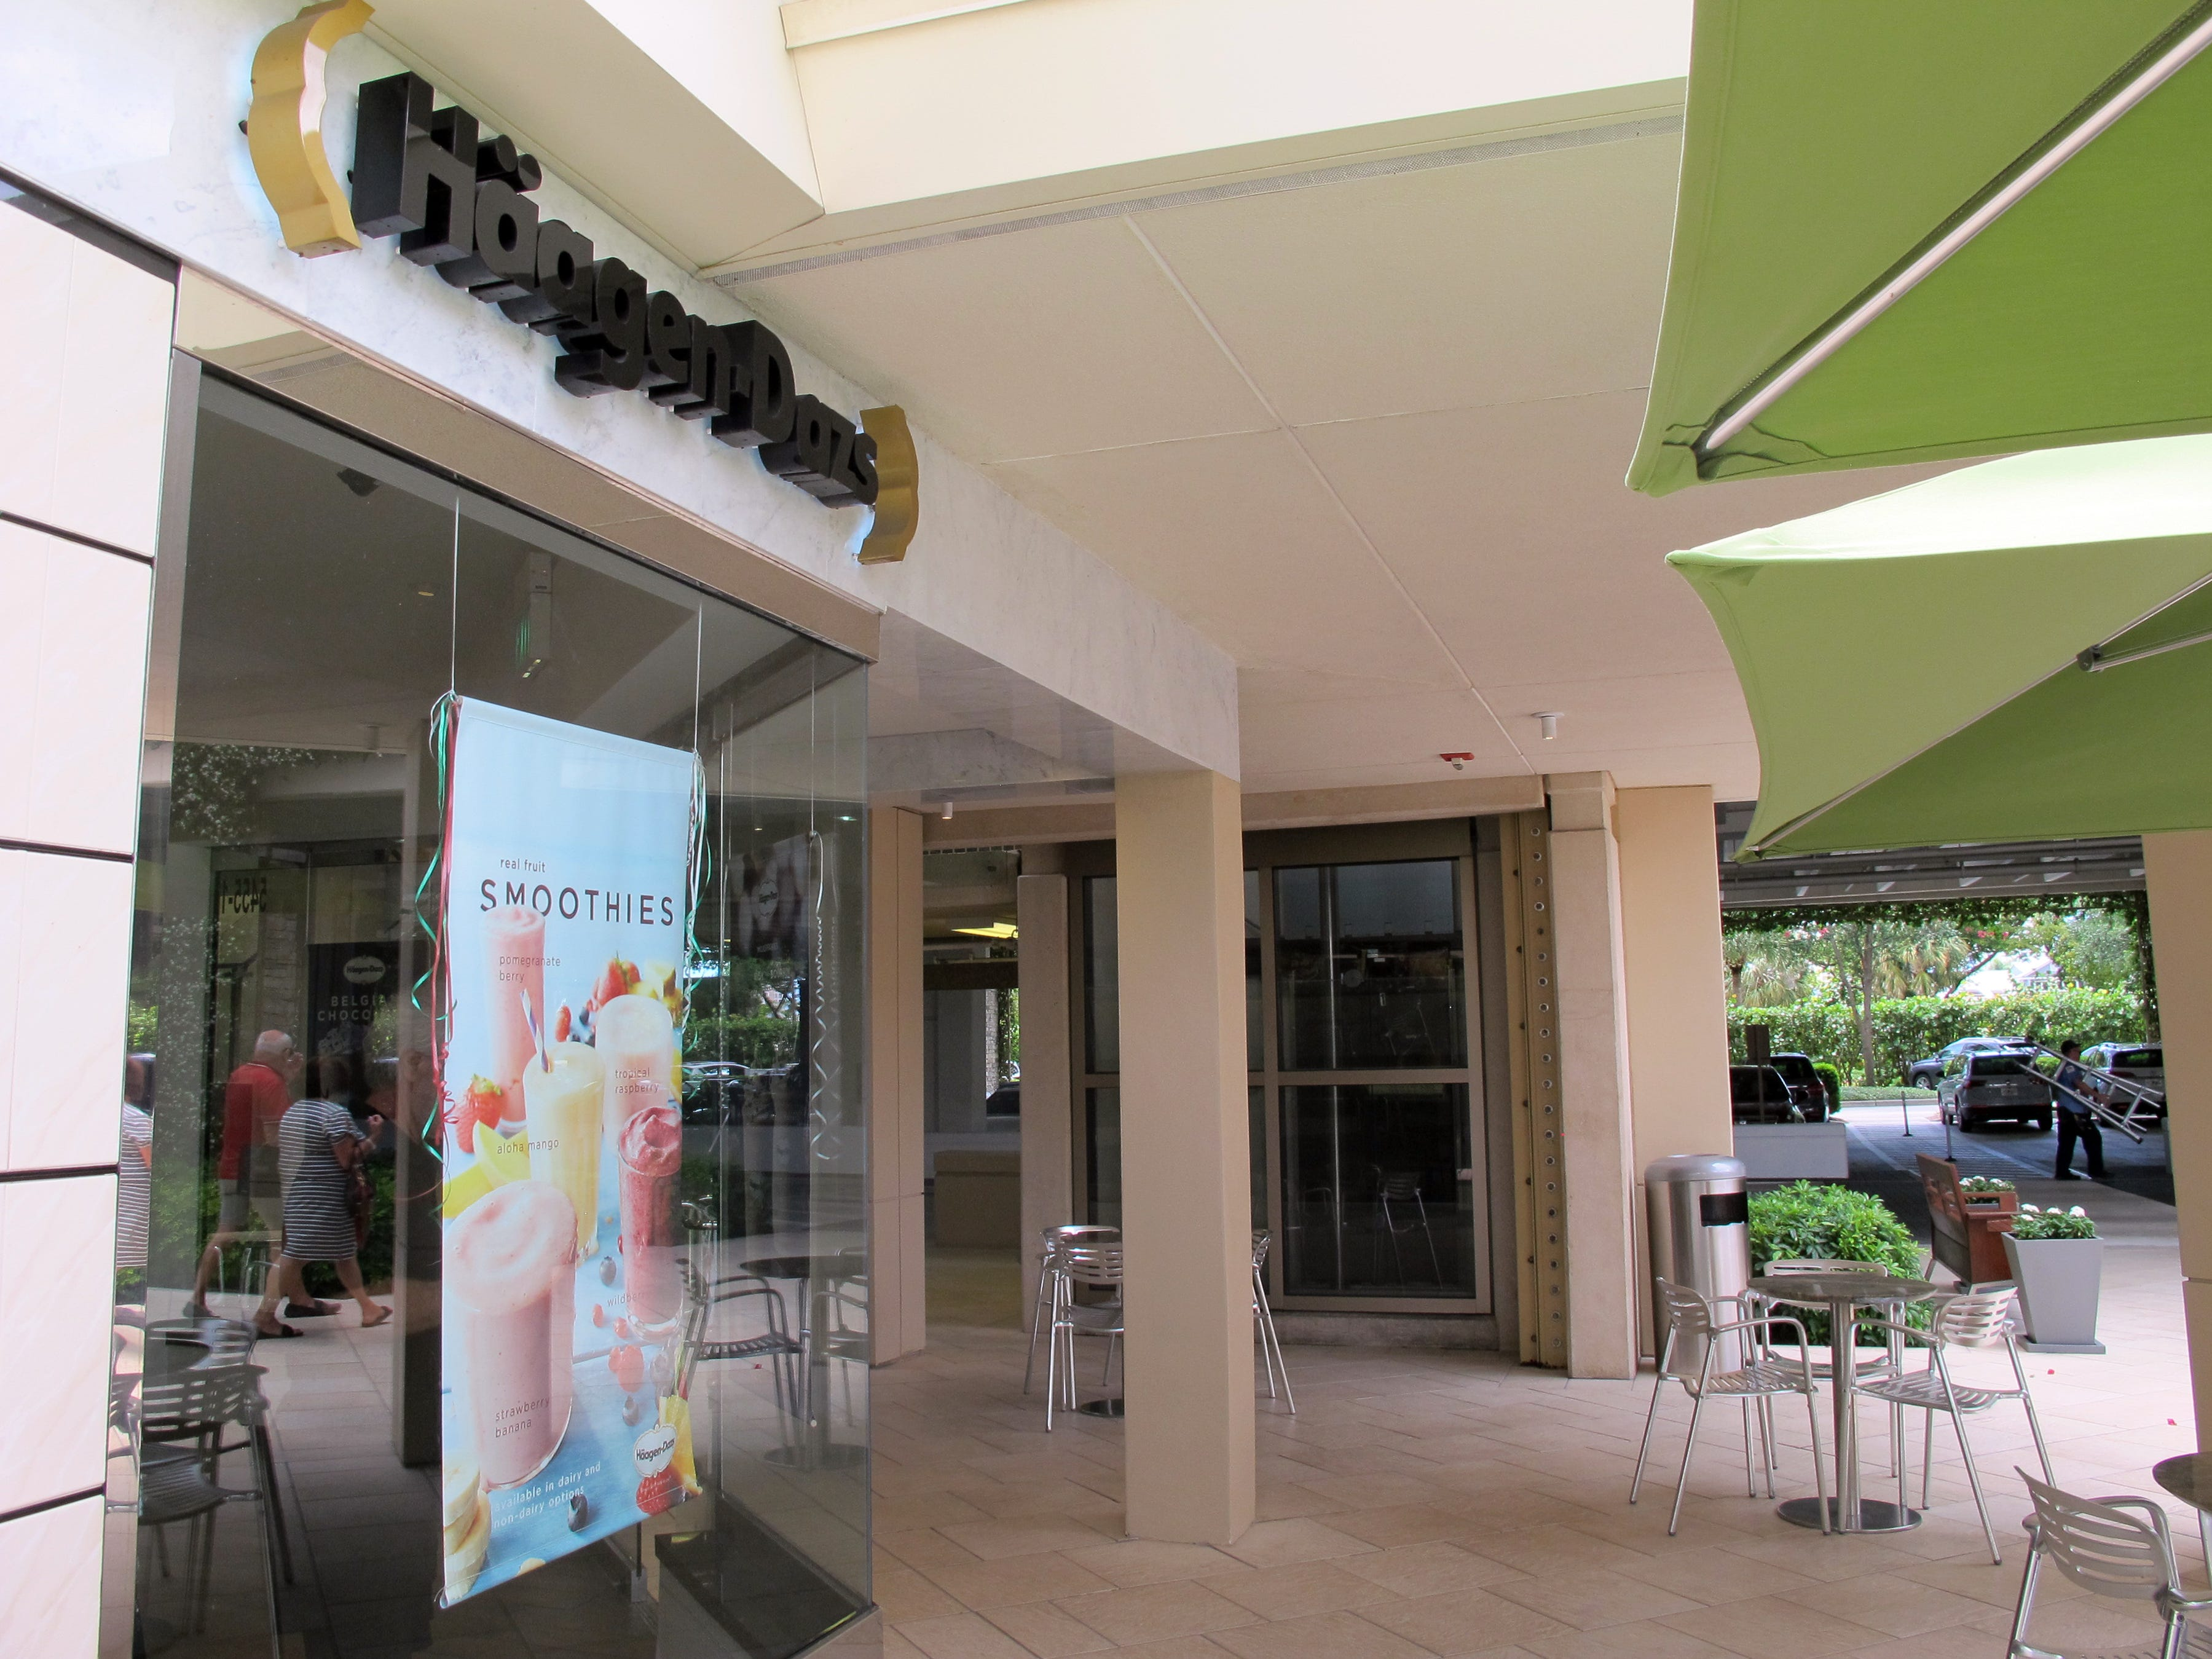 Coffee drinks at Häagen-Dazs provide a coffee shop alternative to the shuttered Starbucks at Waterside Shops in Naples.